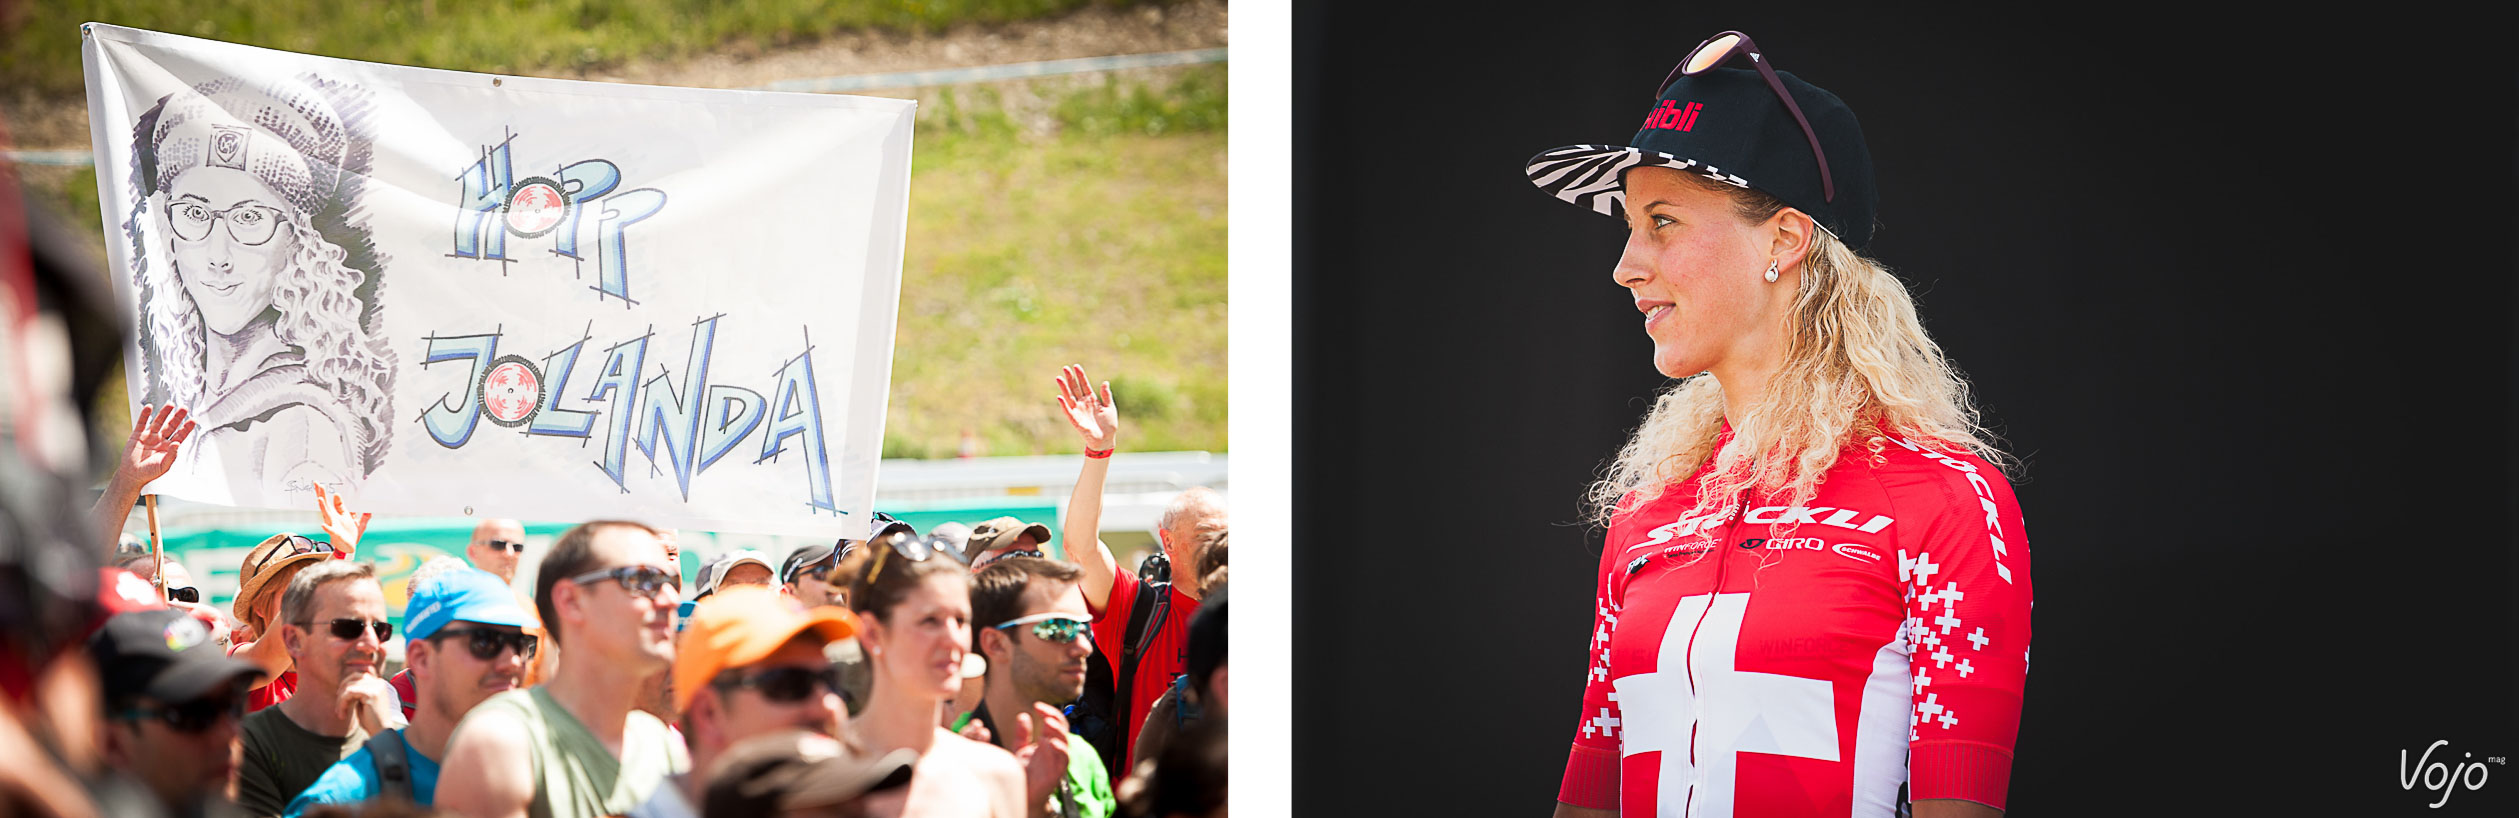 4-World_Cup_XC_Lenzerheide_Women_Batty_VojoMag